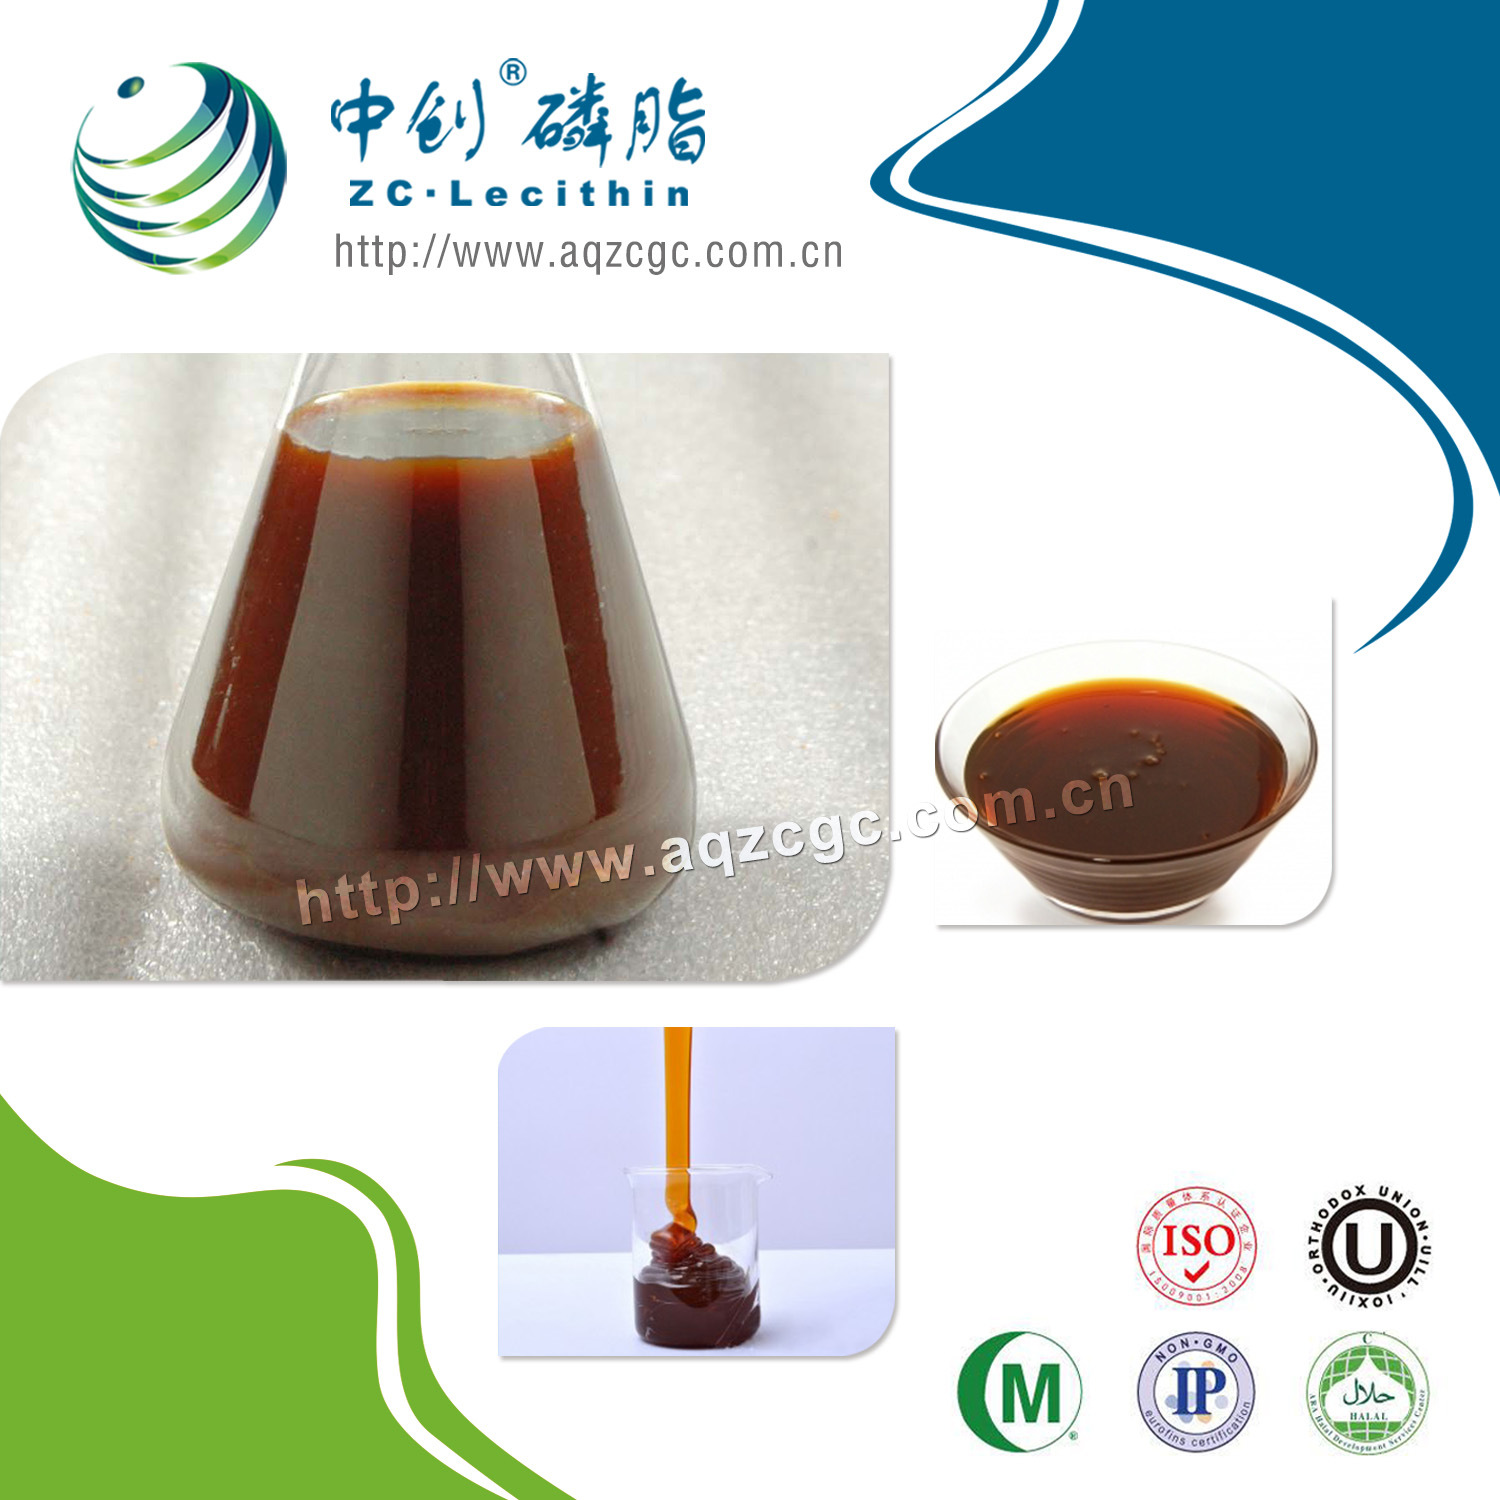 Soy Lecithin Manufacturers/Factory -Feed Grade Concentrated Soy Lecithin Liquid GMO